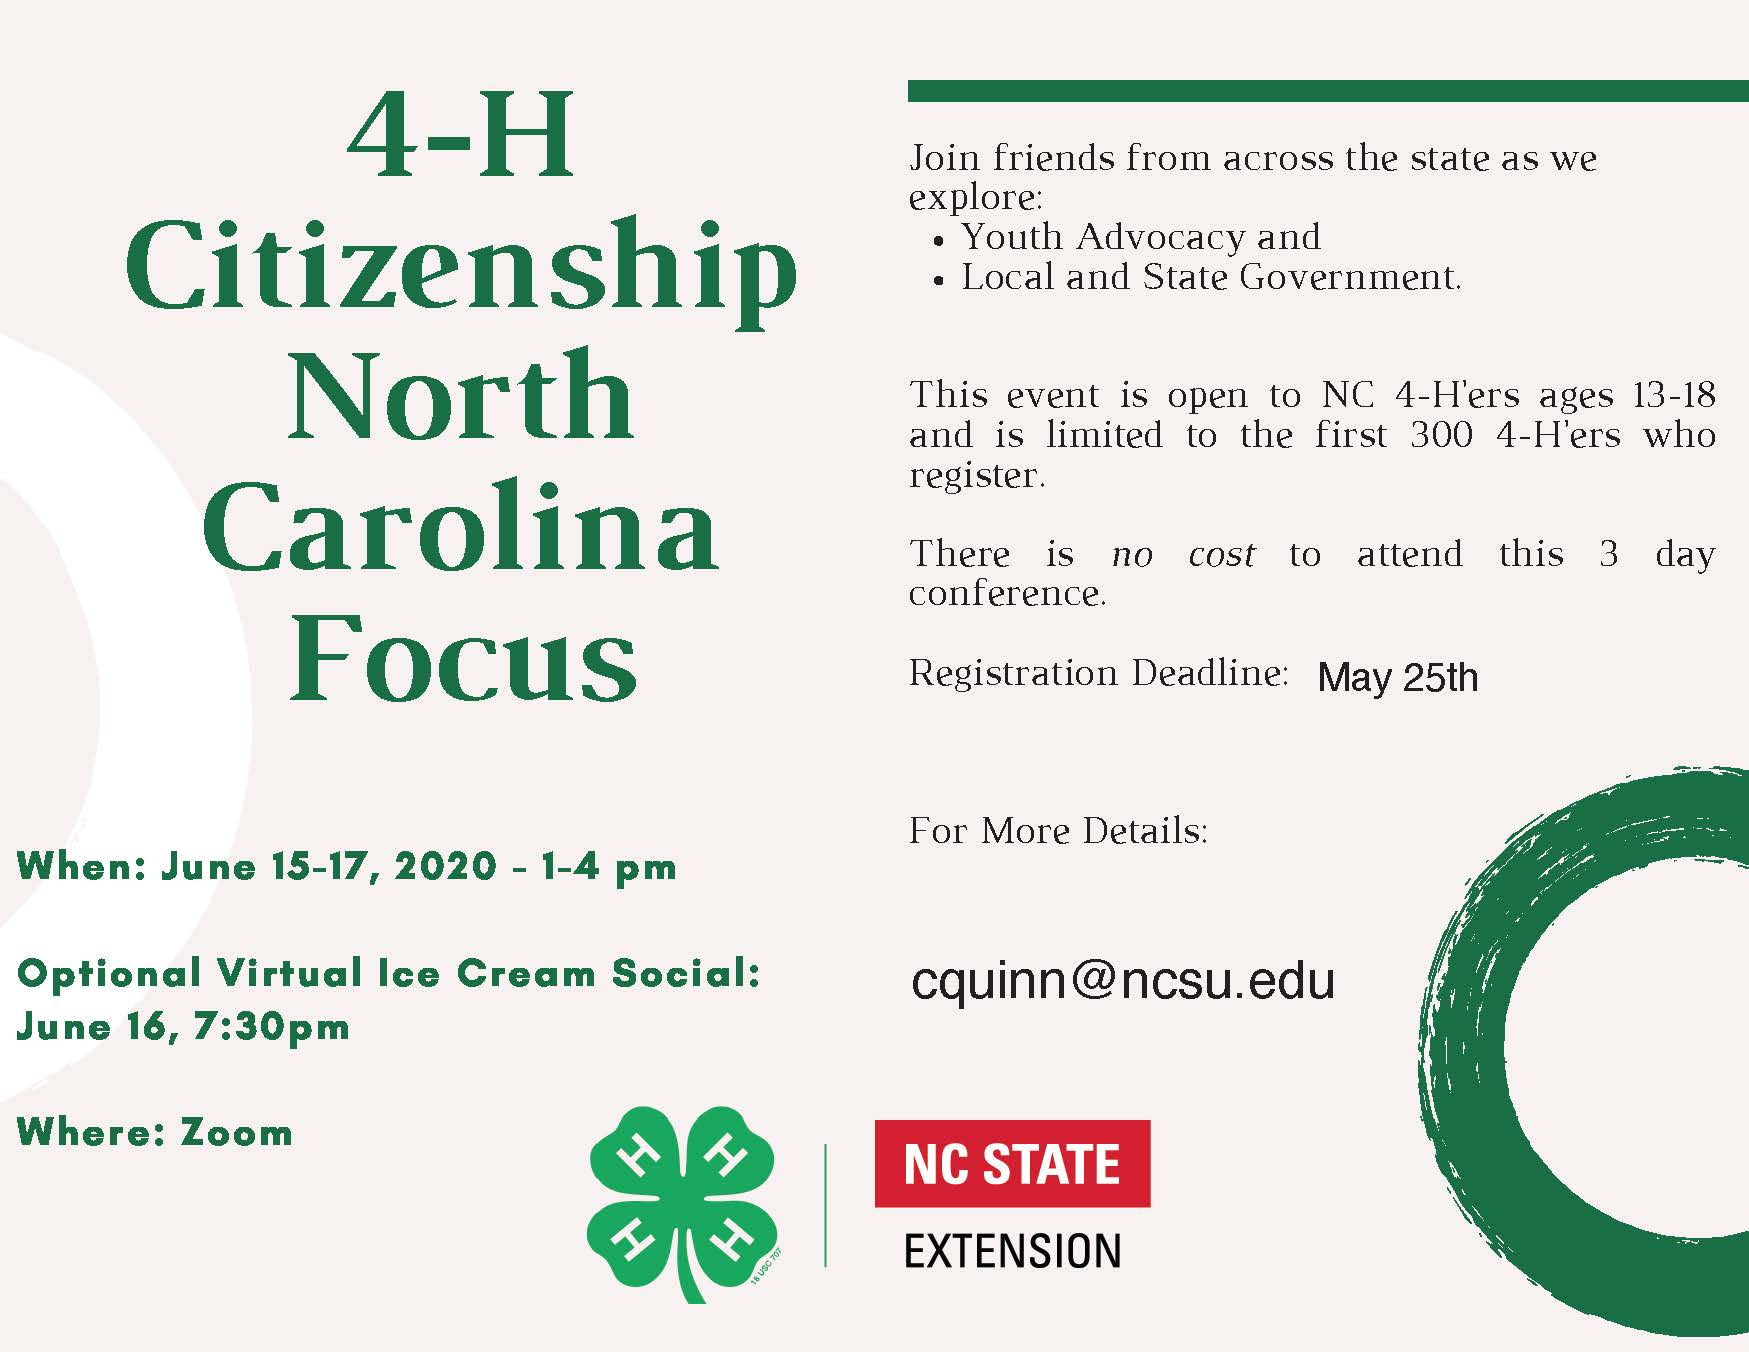 Dates: June 15-17, 2020  Location: Zoom  Times: 1:00 – 4:00 p.m. each day  Cost: There is no cost to attend this event. Ages: This event is open to all 4-H youth ages 13-18